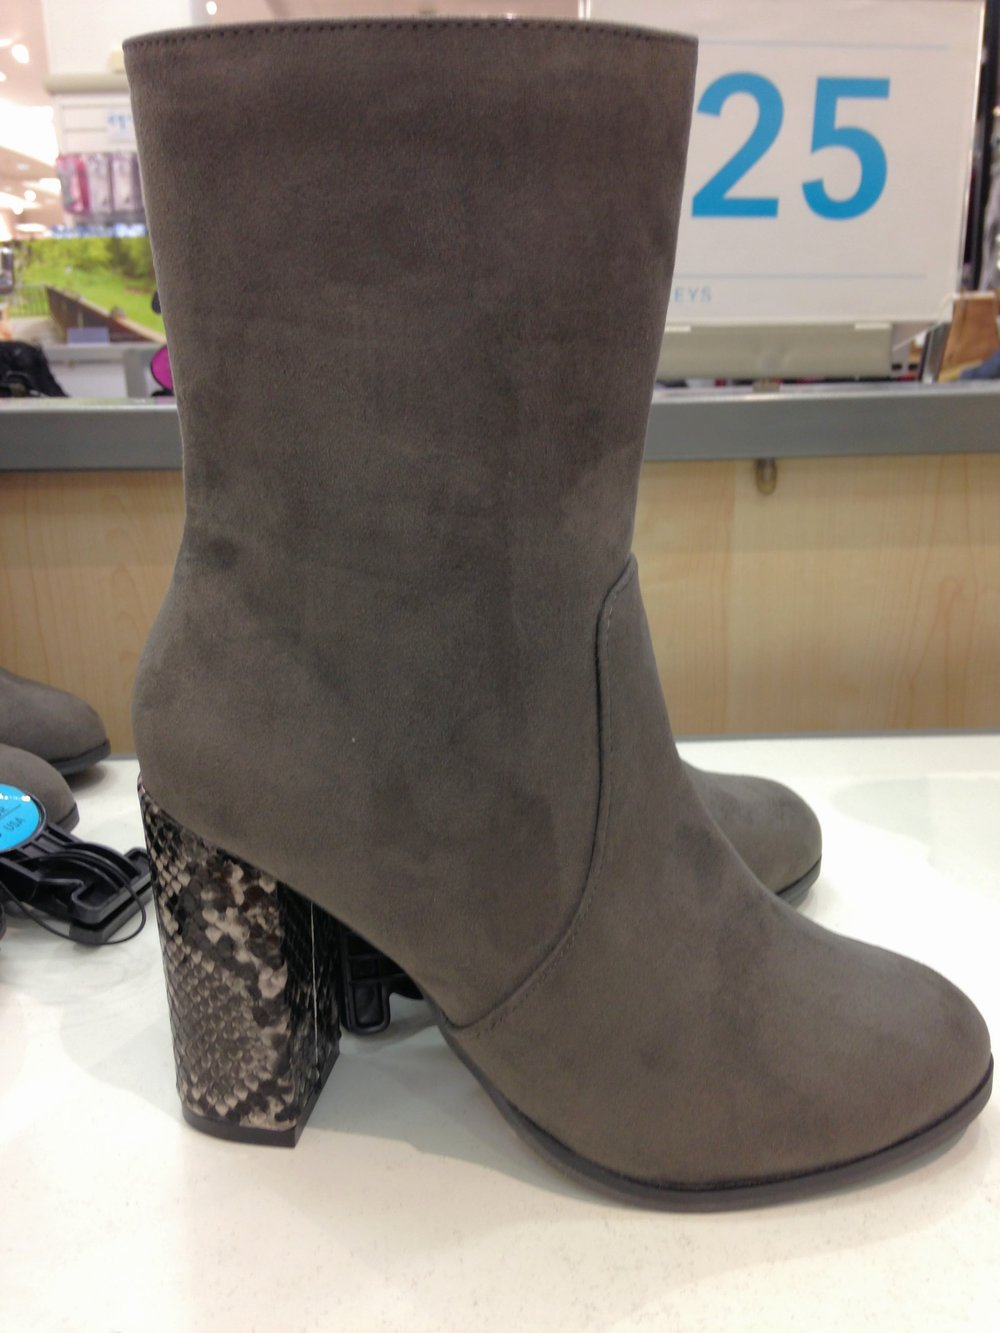 Pennys grey boot